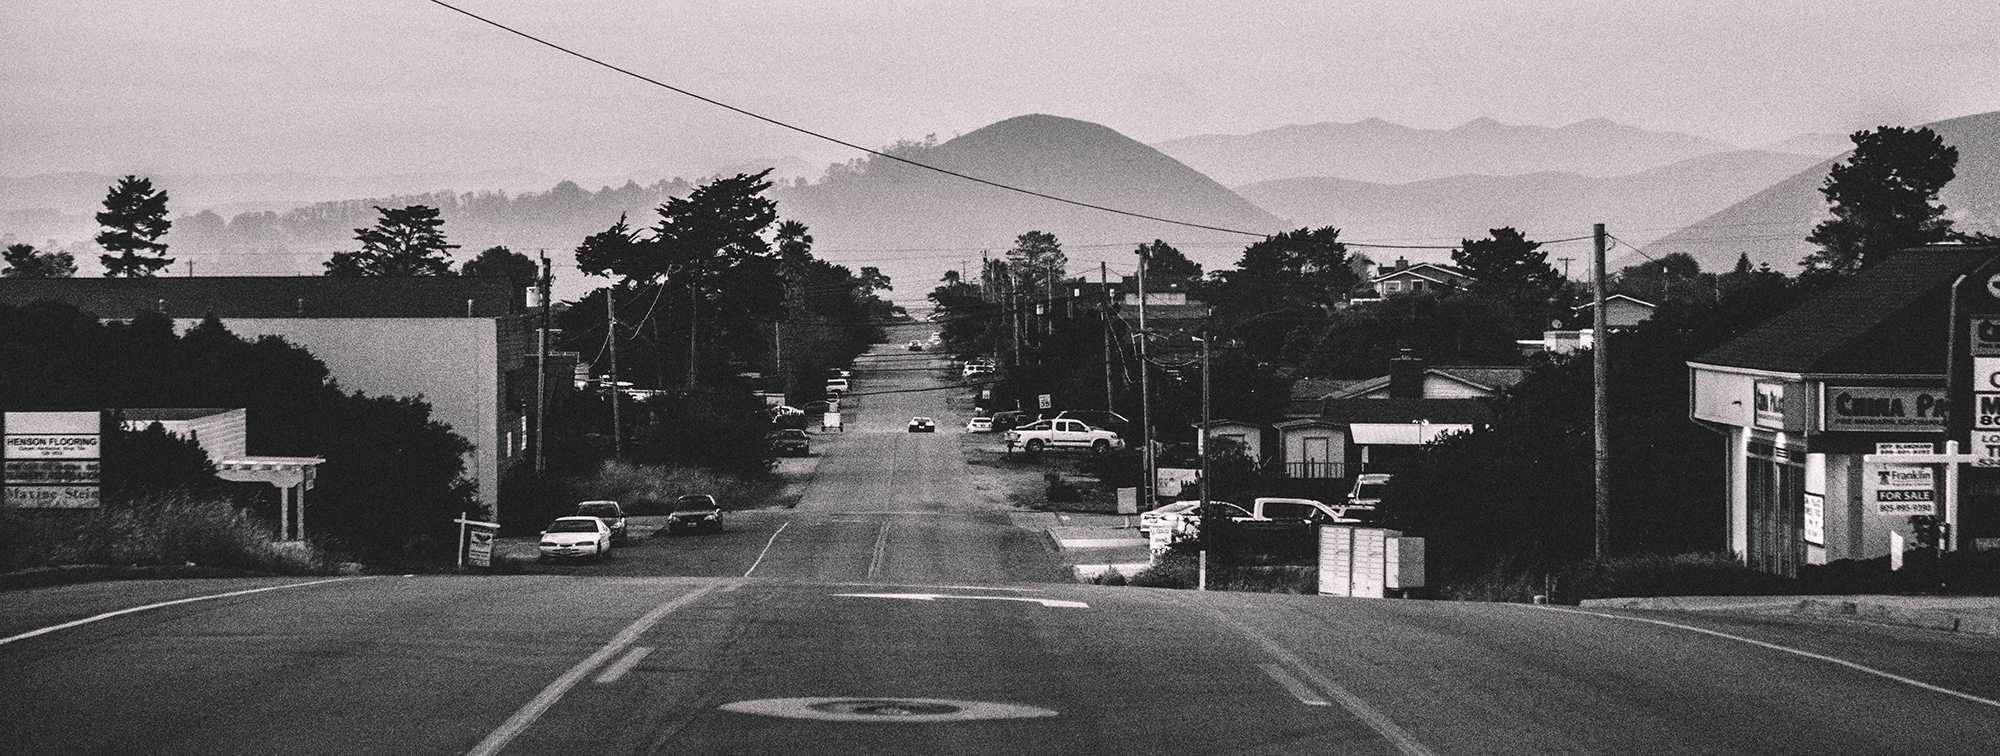 grainy, black, white, road, hills, cars, america